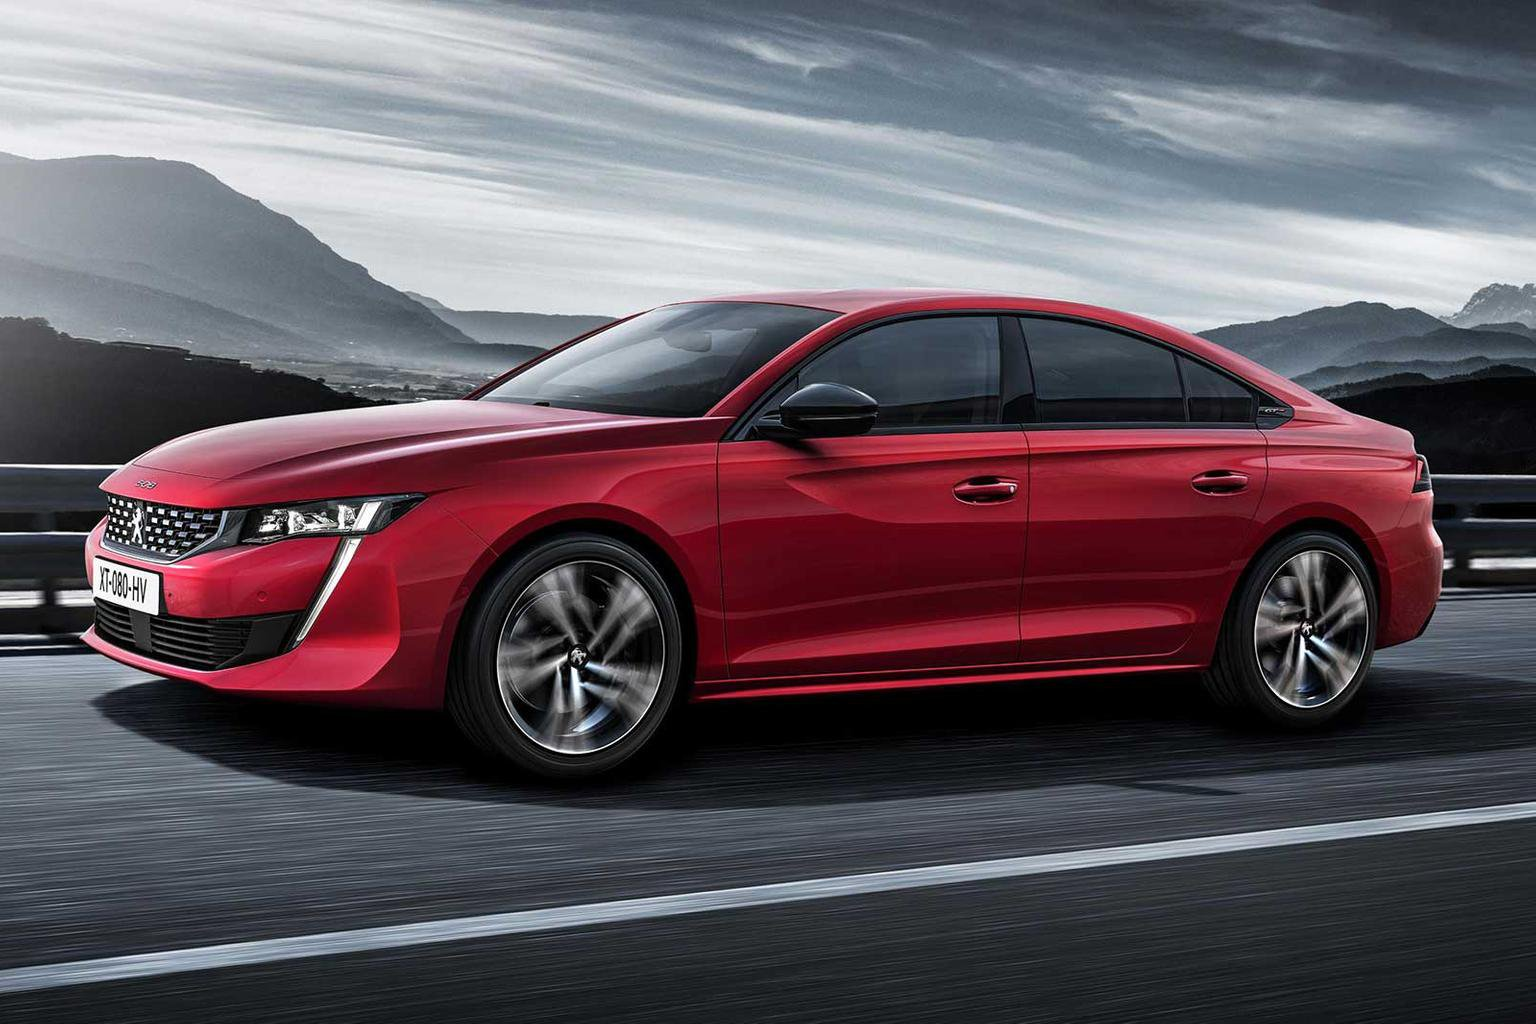 2018 Peugeot 508 exclusive Reader Test Team preview